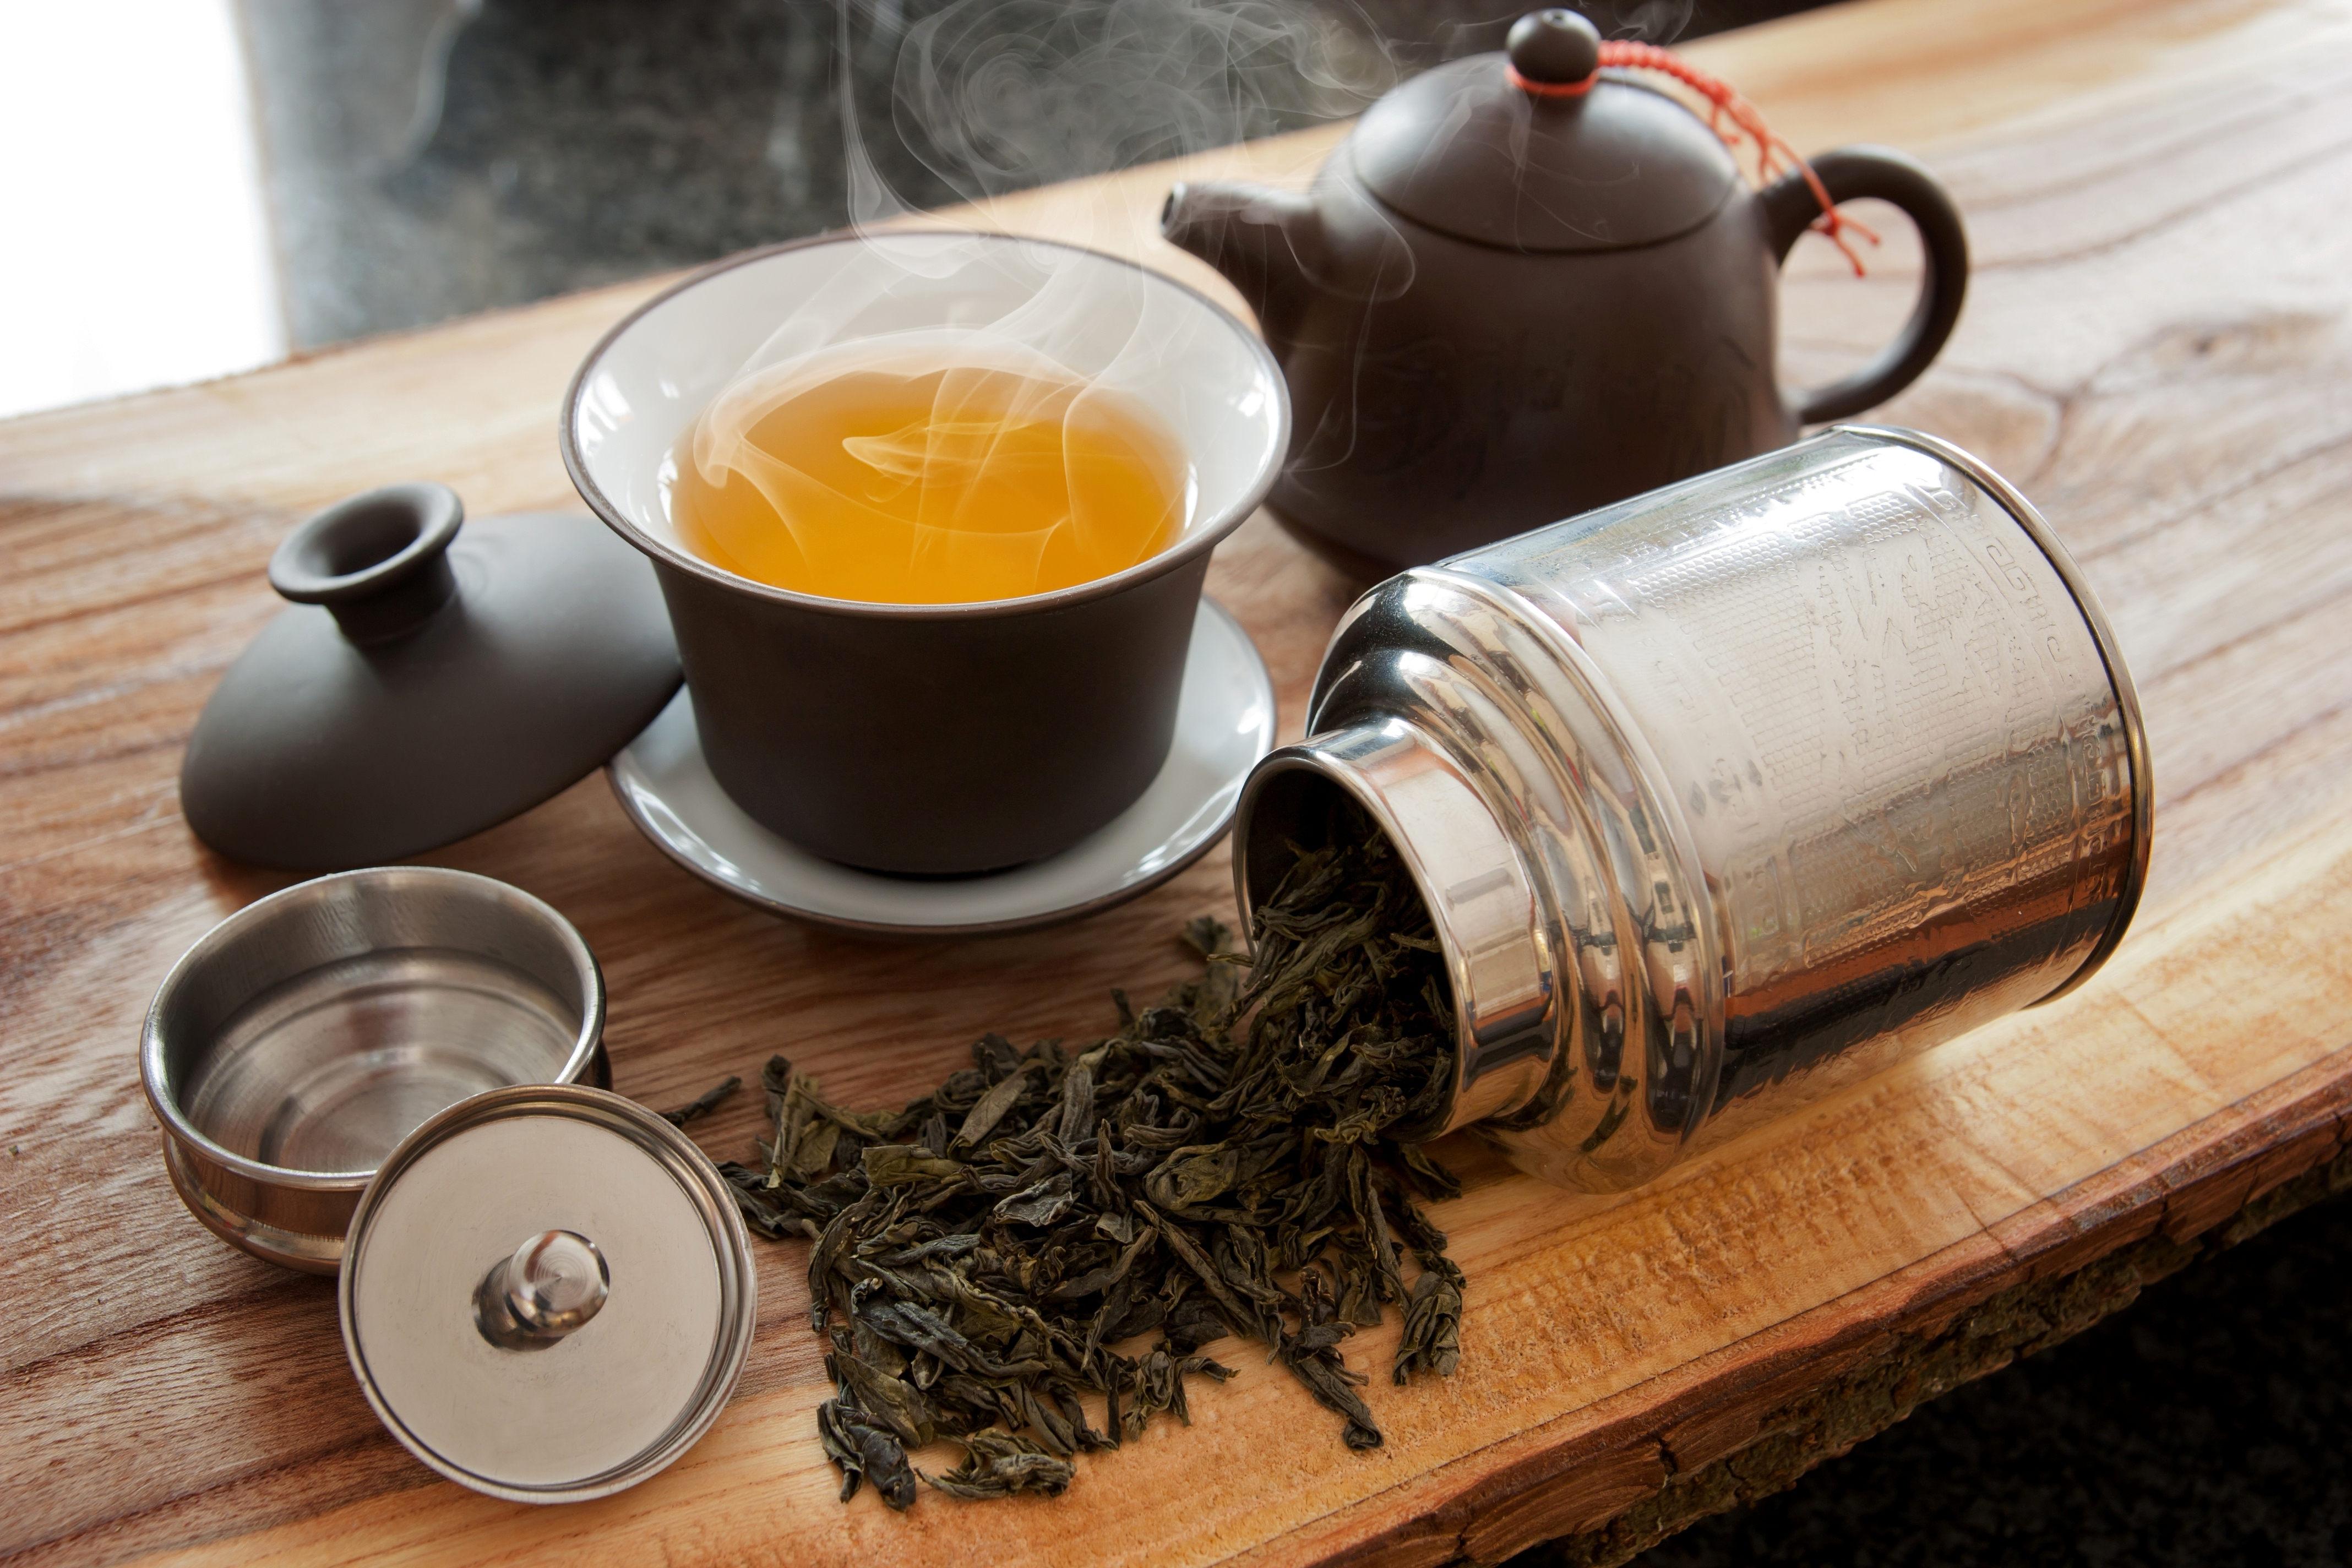 6 Types of Tea and Their Health Benefits